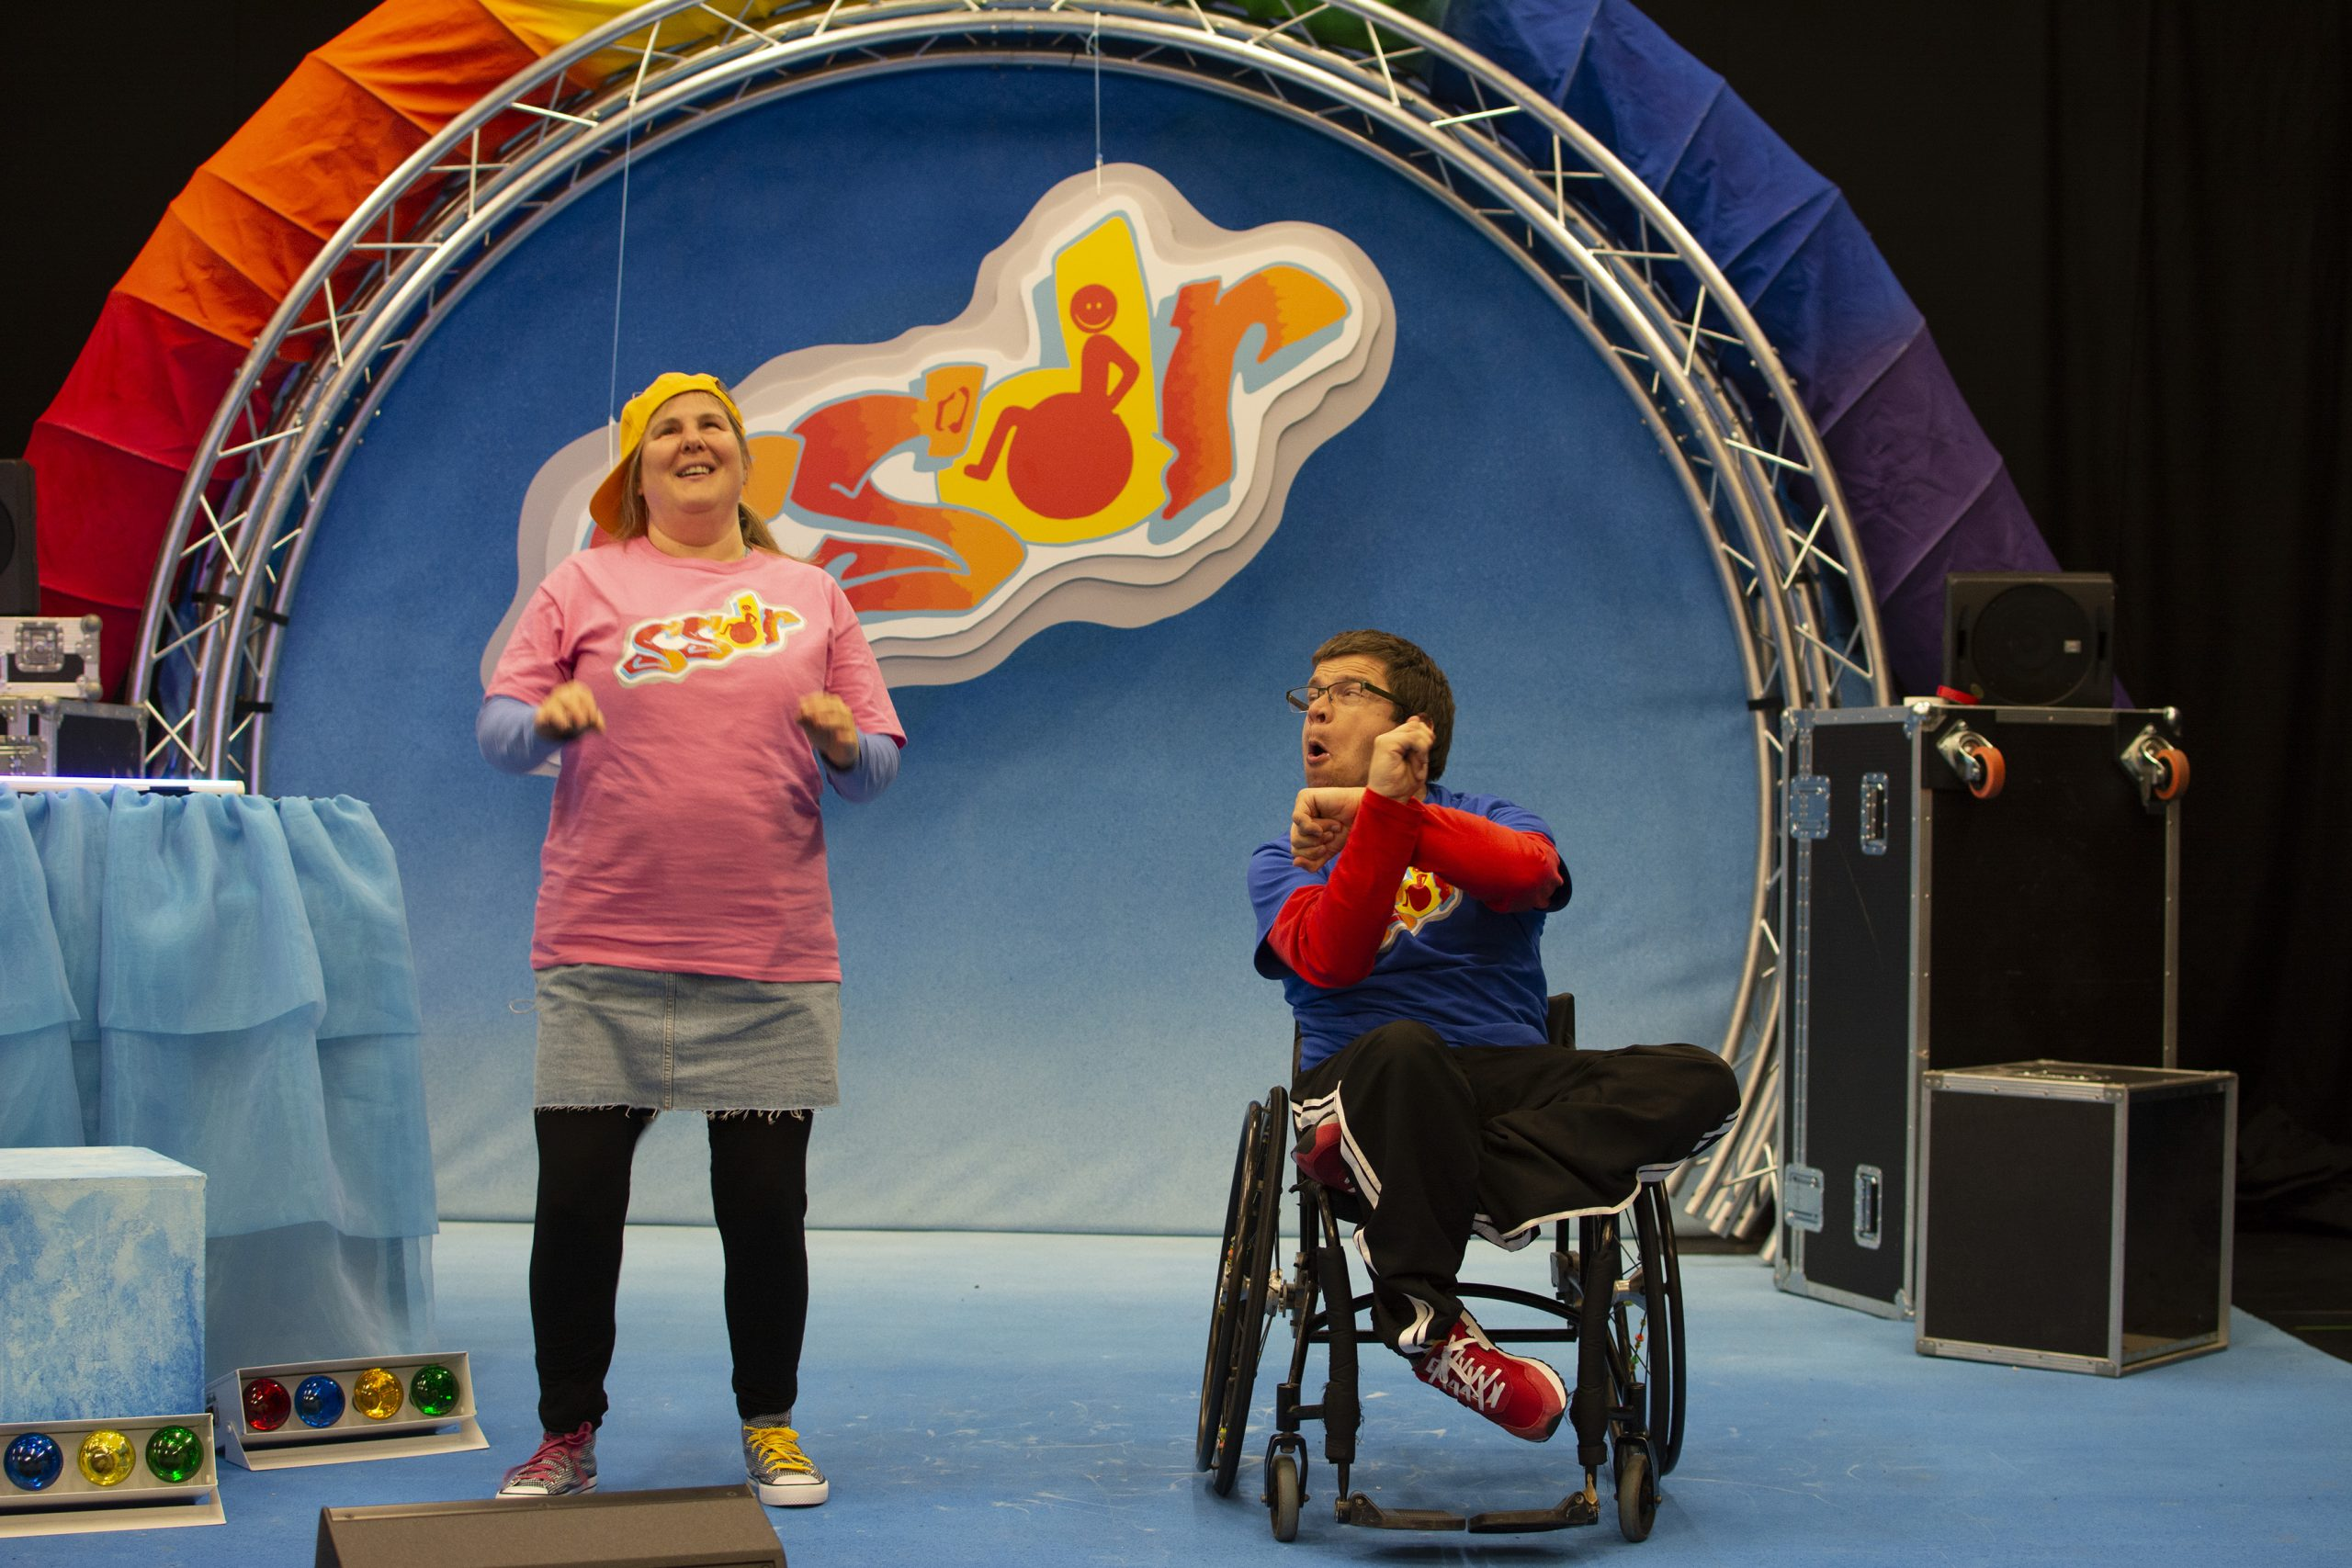 Sally and Robert are positioned at the front of the stage. Robert, on the right, has his arms positioned in an X as he looks over at Sally. Sally, on the left, is smiling and has her hands lifted at her sides as if mid gesture.